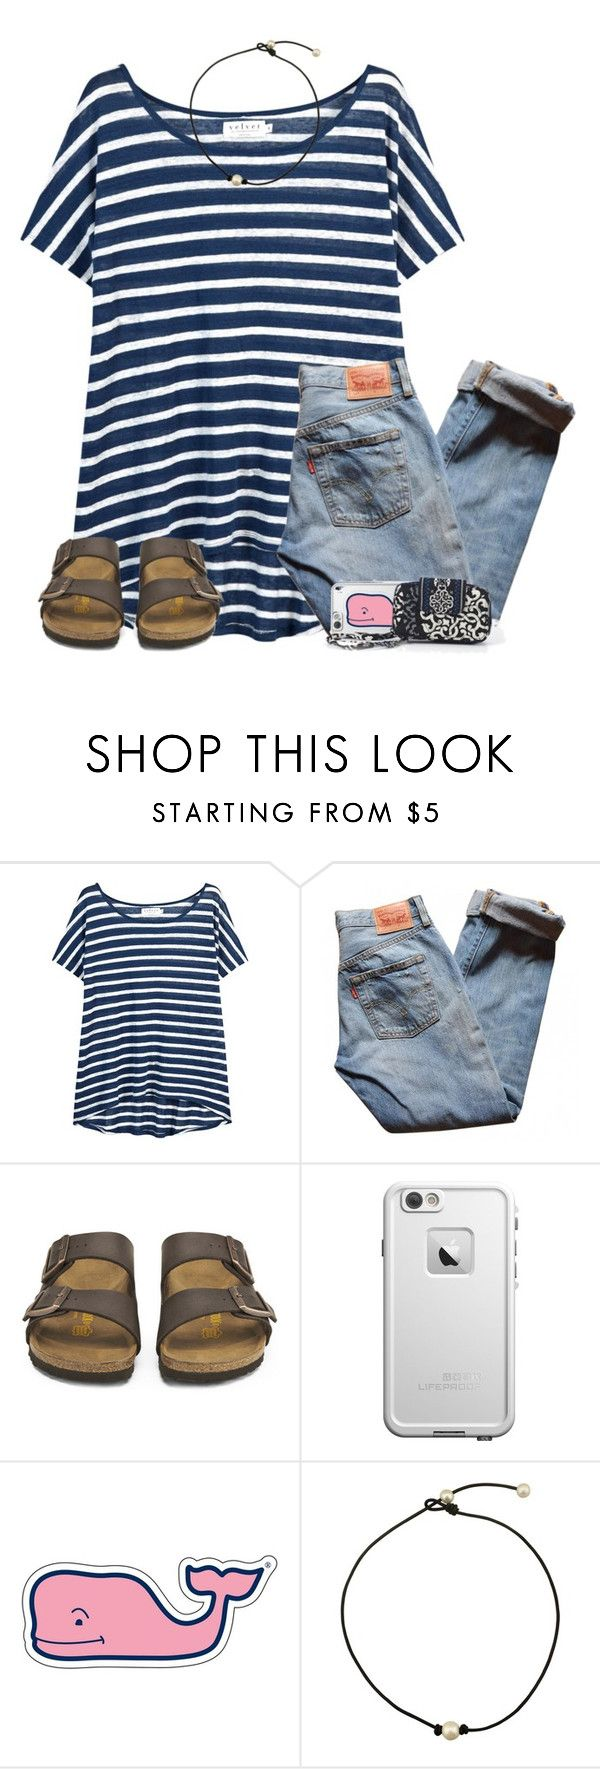 """""""this is my ootd. what's yours? ⬇️comment⬇️"""" by lydia-hh ❤ liked on Polyvore featuring Velvet, Levi's, Birkenstock, LifeProof, Vineyard Vines and Vera Bradley"""